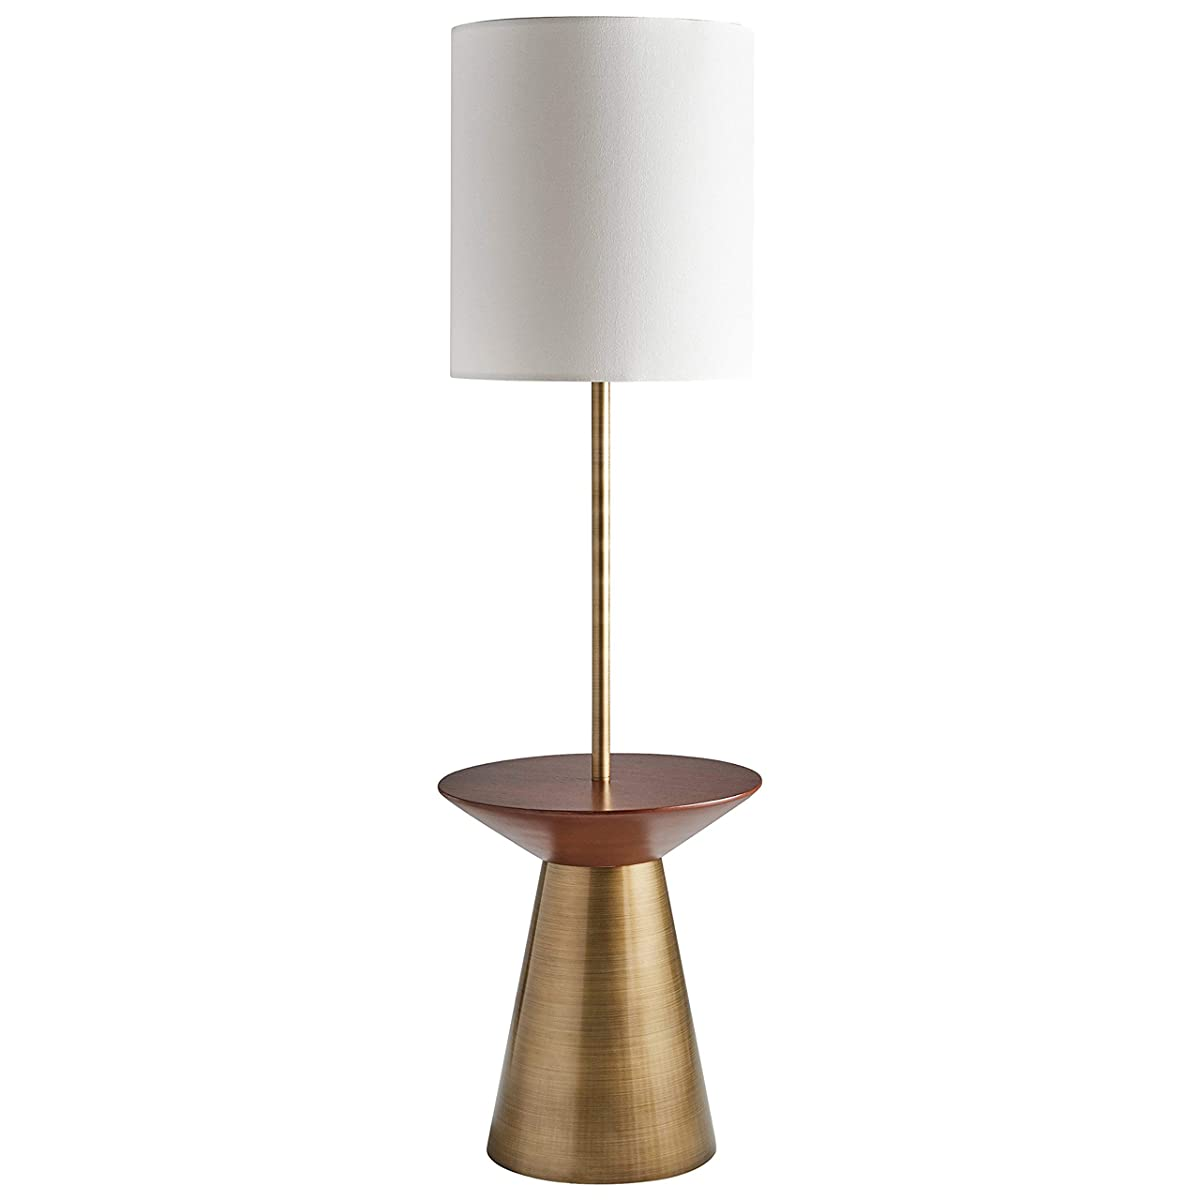 "Rivet Modern Floor Lamp with Shelf, 60""H, With Bulb, Brass with Linen Shade"